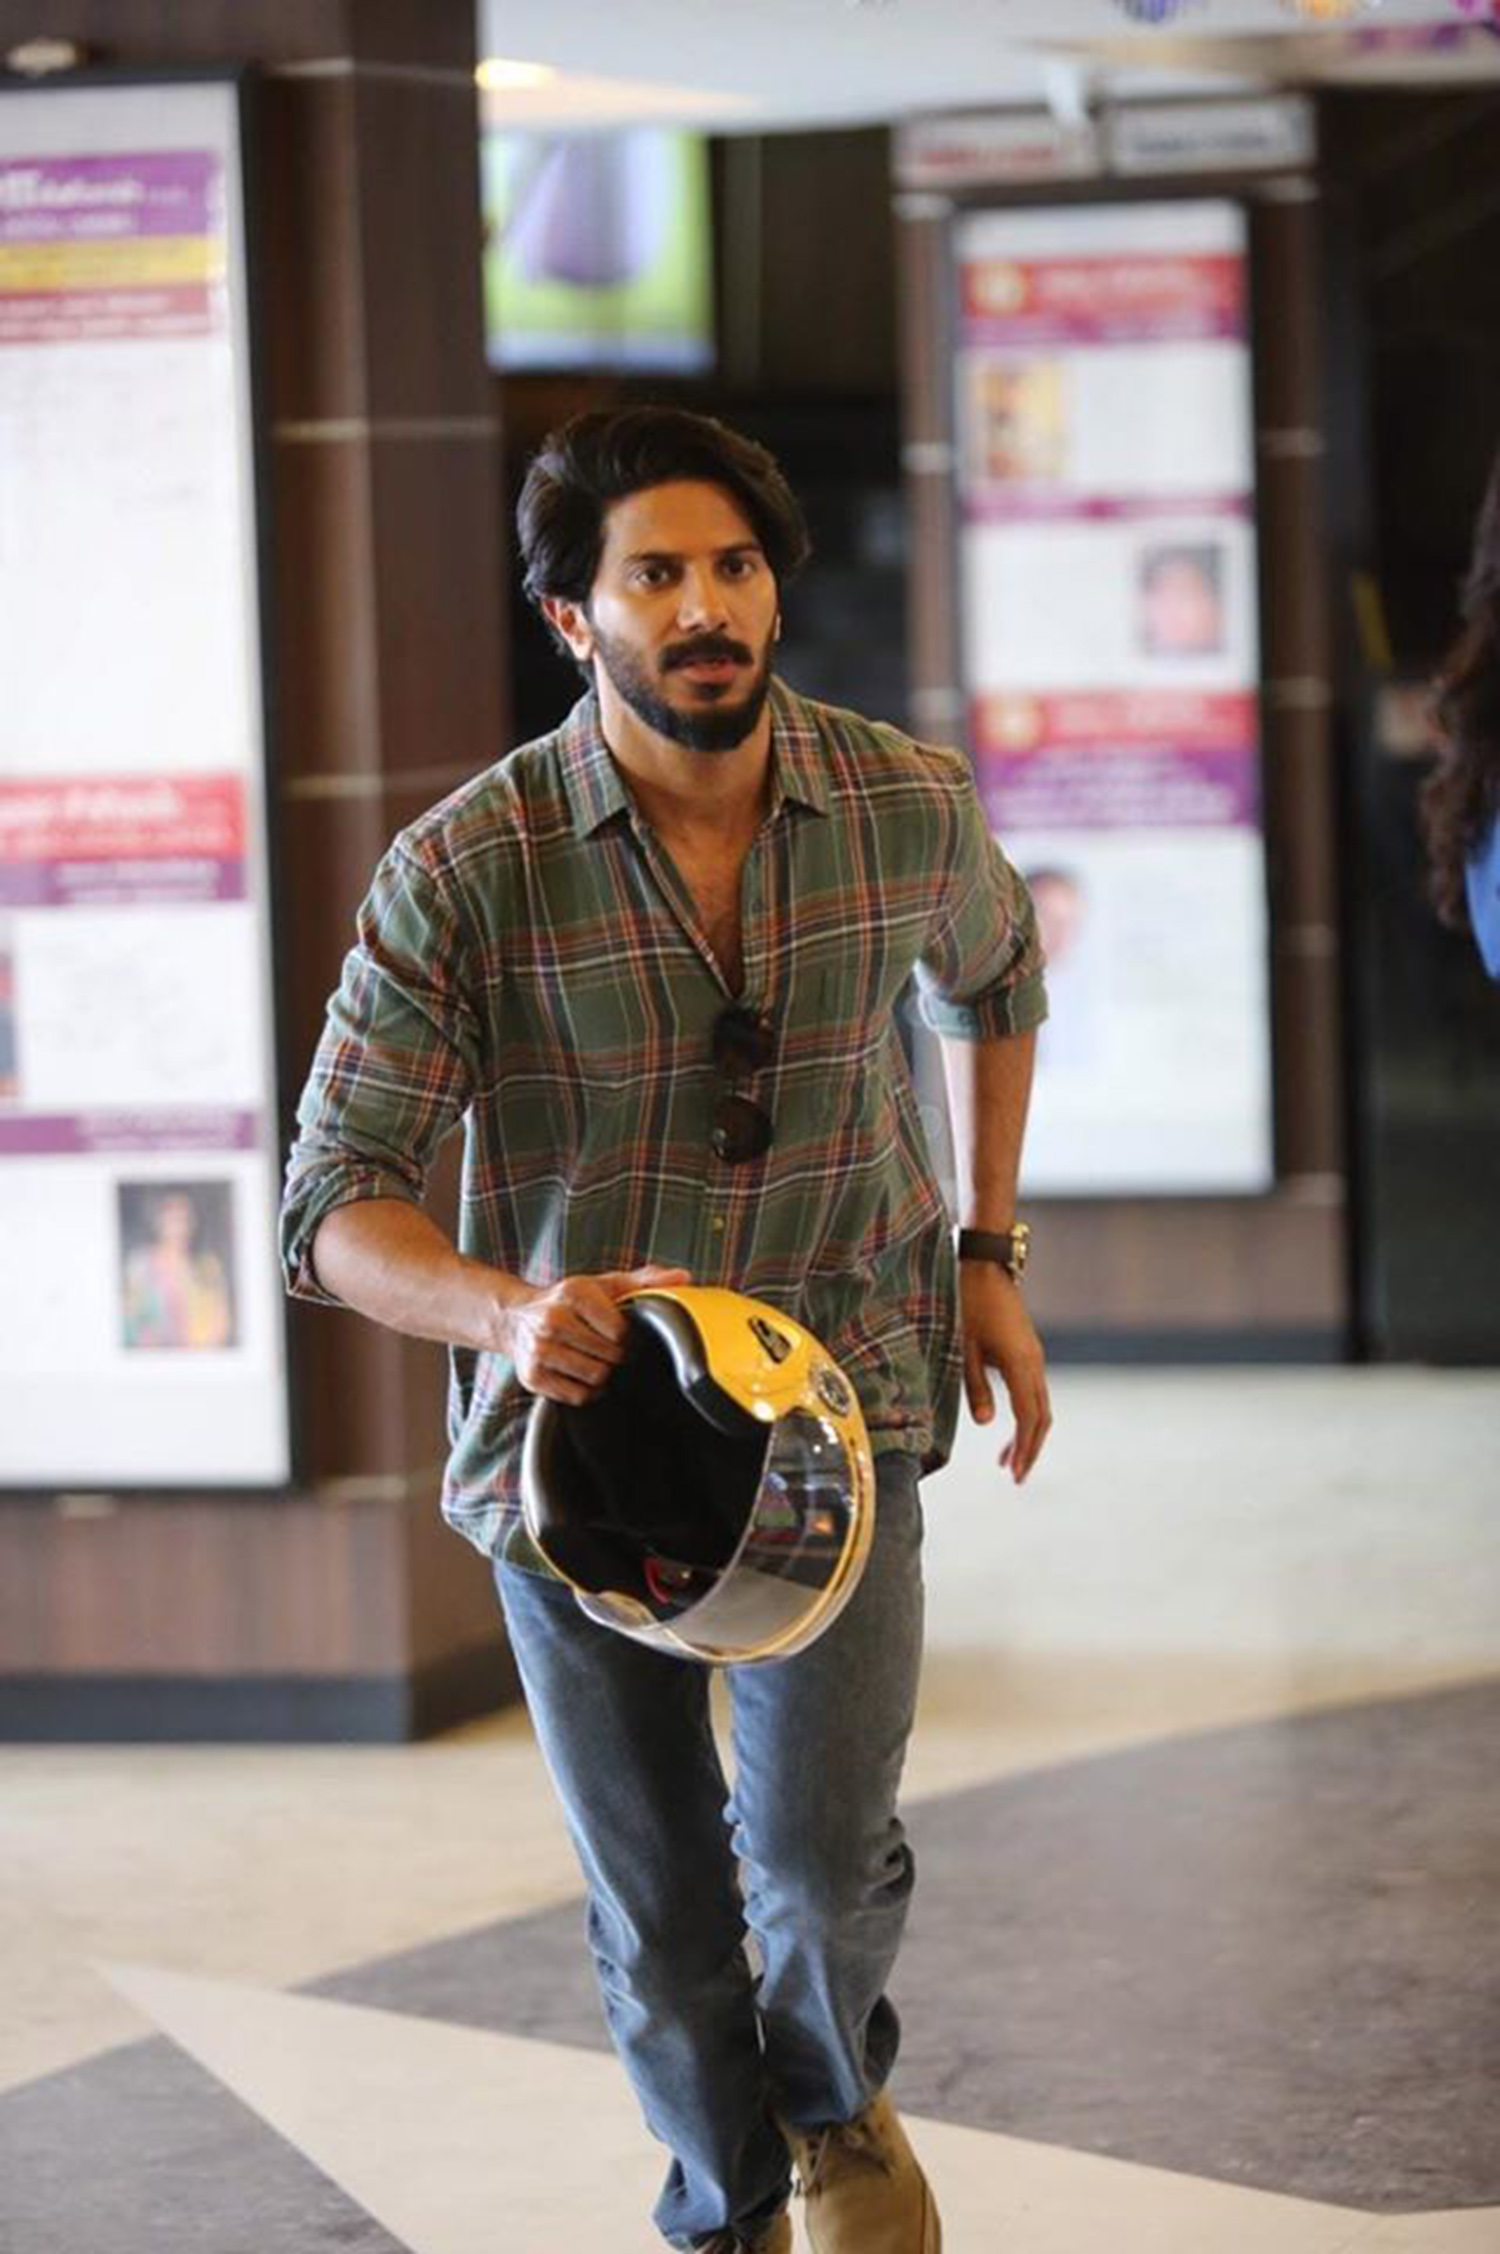 Dulquer Salmaan,Dulquer Salmaan production films,Dulquer Salmaan new malayalam films,Dulquer Salmaan's upcoming films,Dulquer Salmaan production movies,Wayfarer Films,